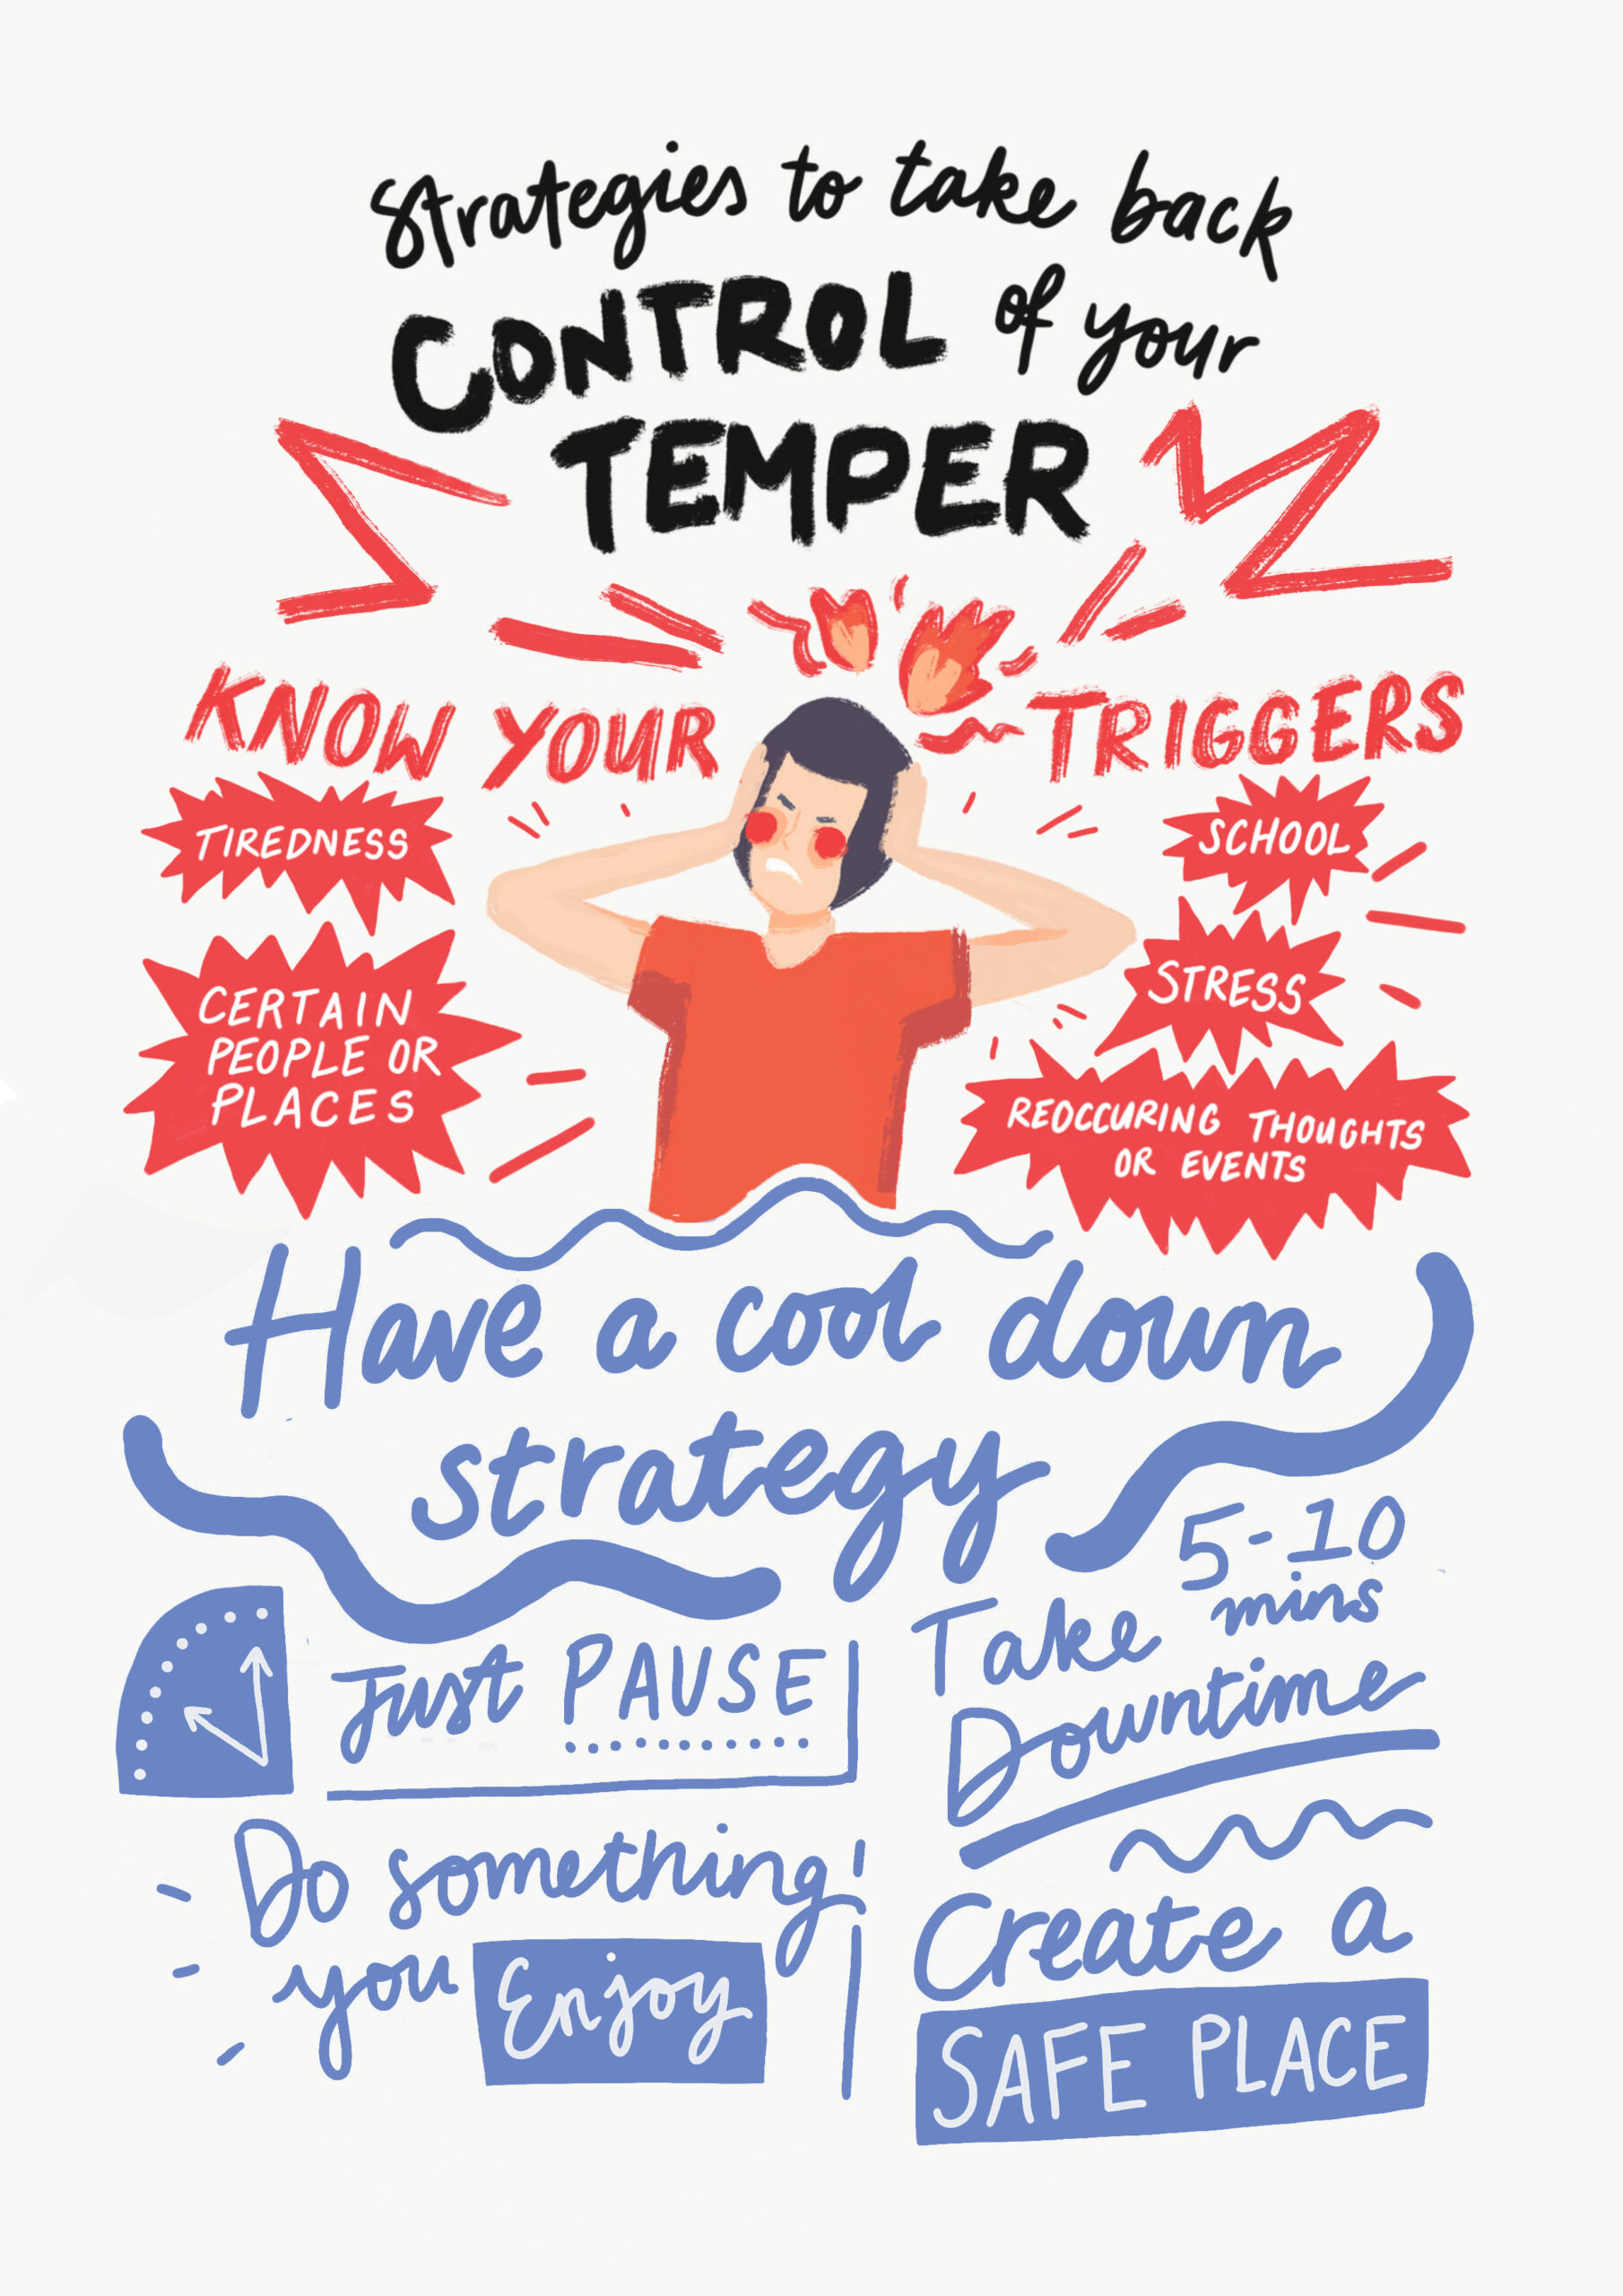 illustration of tips how to keep your temper under control